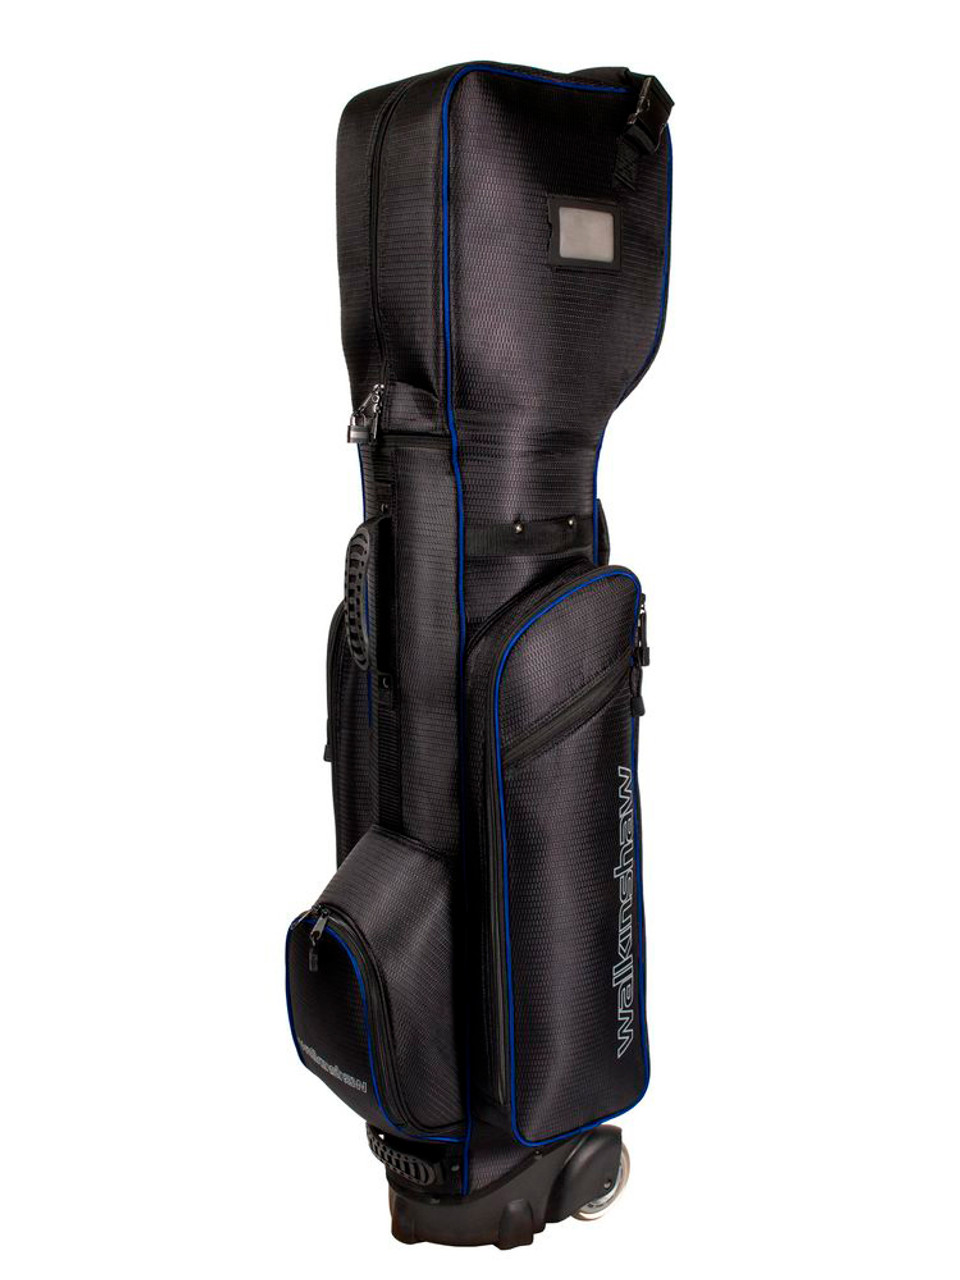 Walkinshaw Wheelie Golf Travel Bag Black Blue For Sale  dcb8cd67028a4